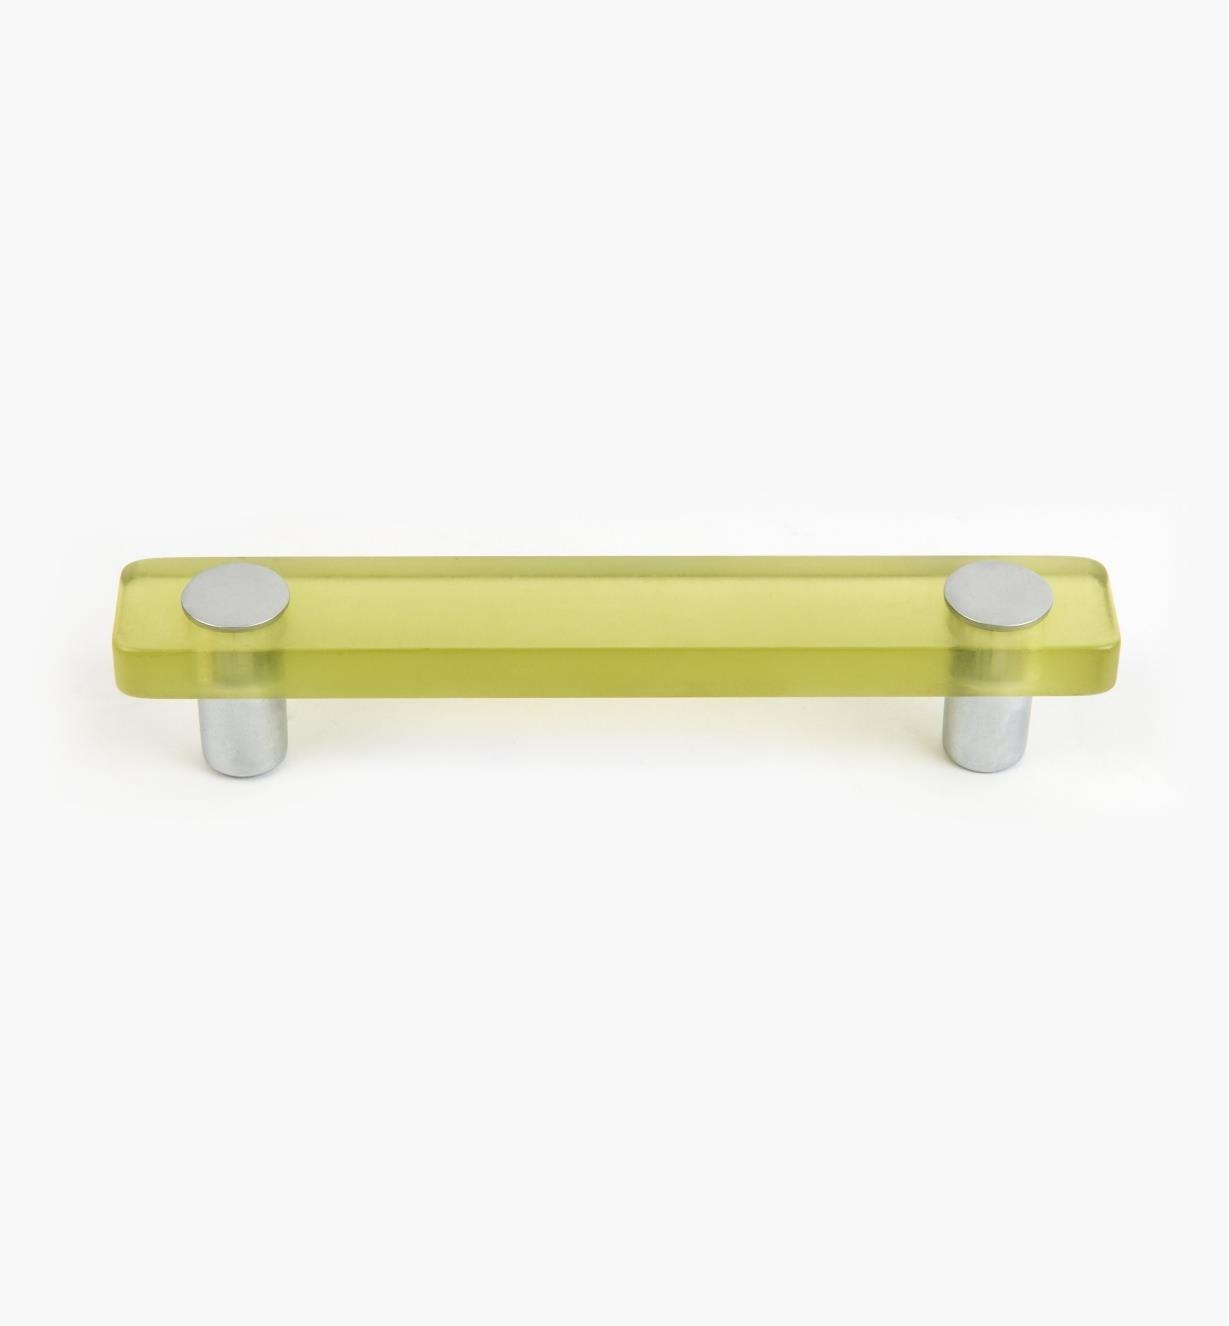 01W1152 - Malaga Hardware, Green Handle